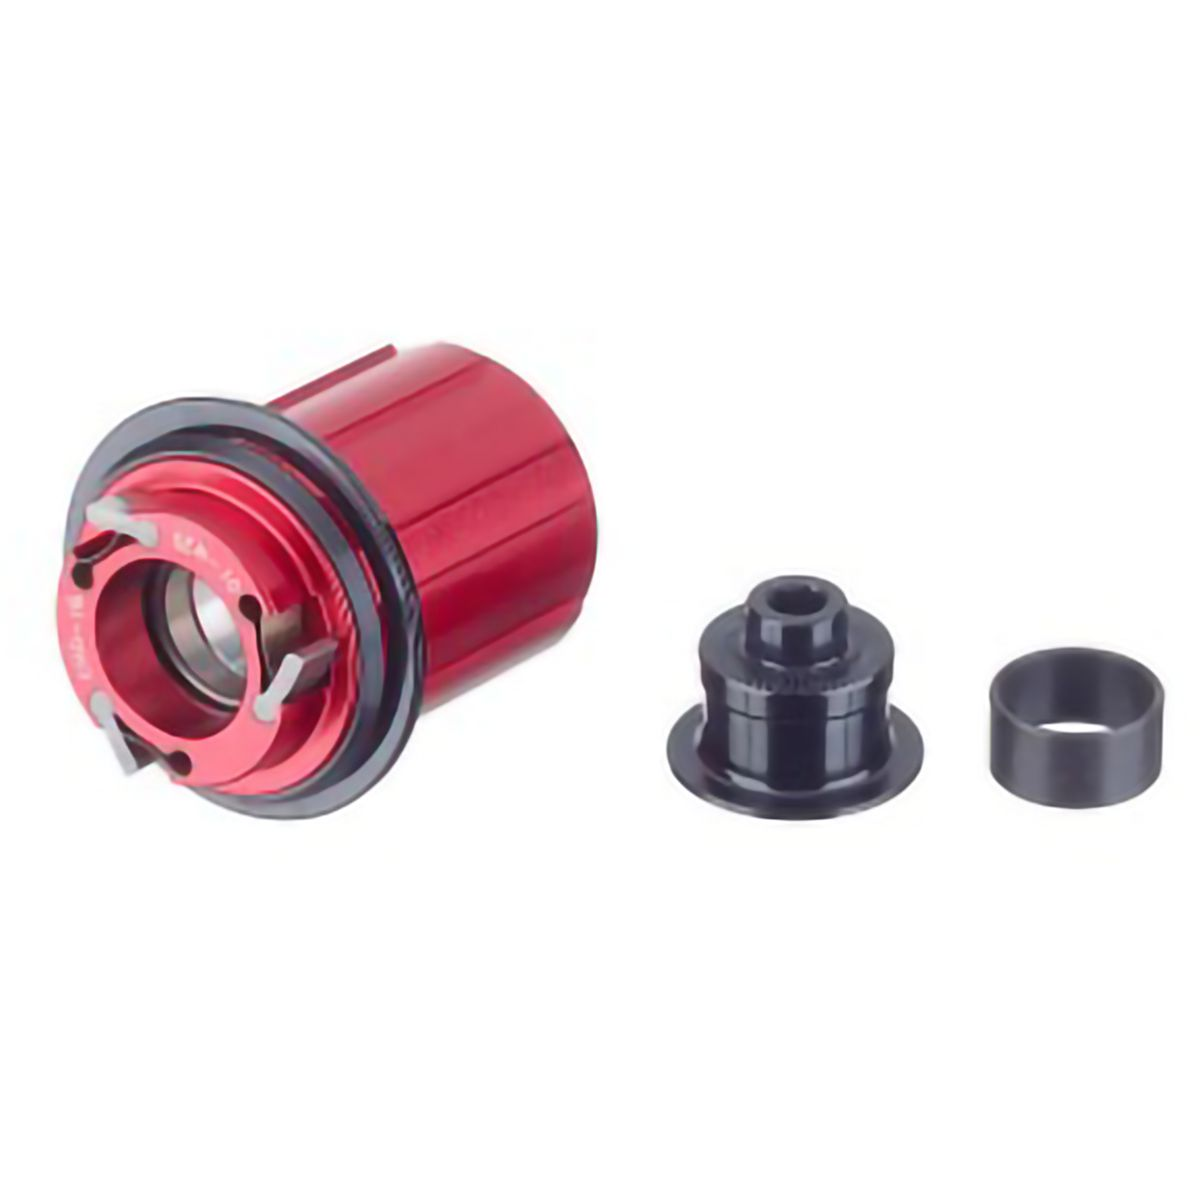 DX 1850 11-speed freehub body / 5mm QR